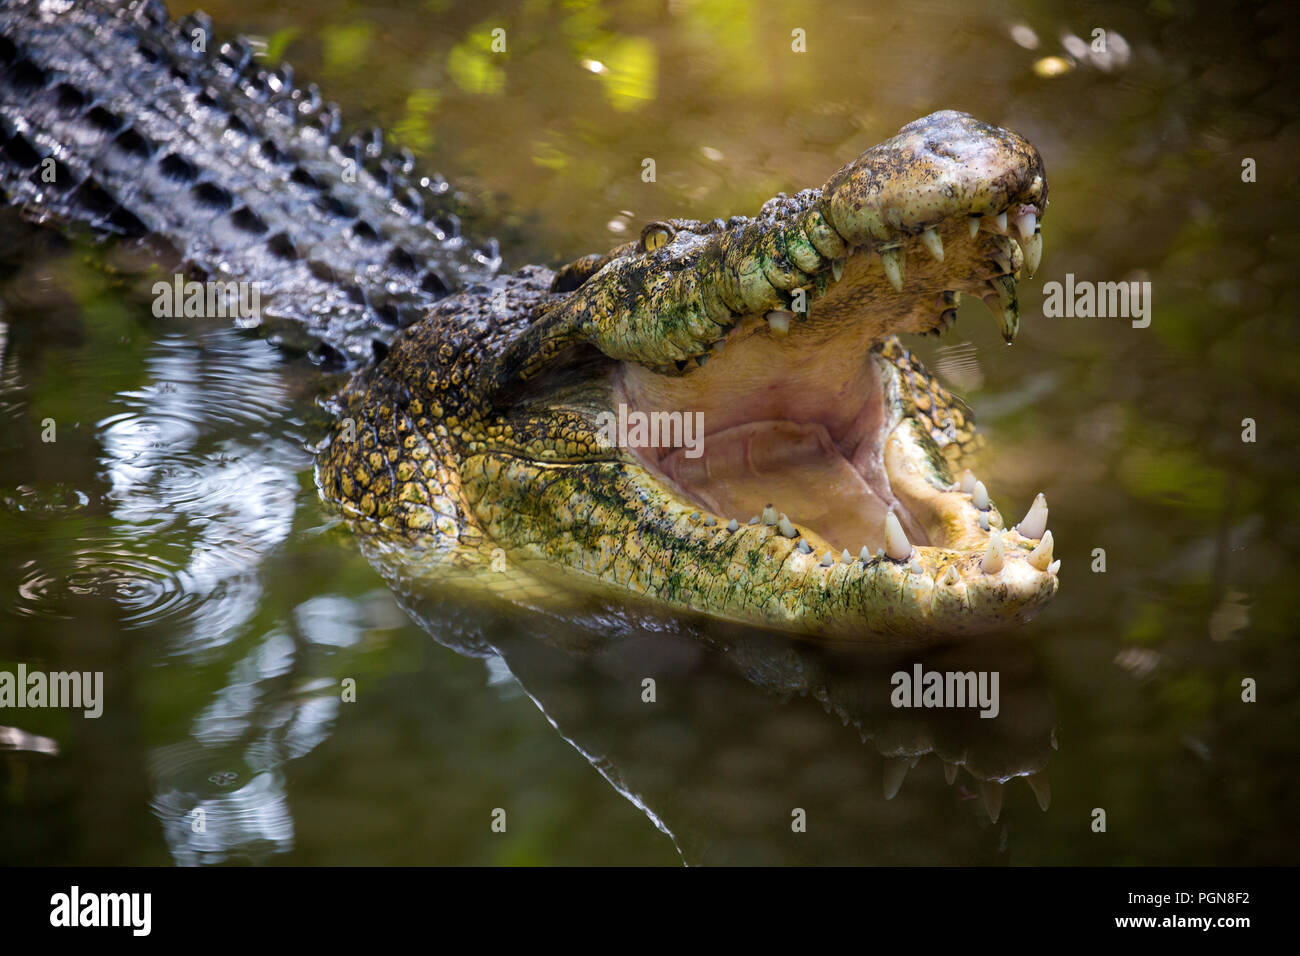 Crocodile with open mouth in Bali - Stock Image